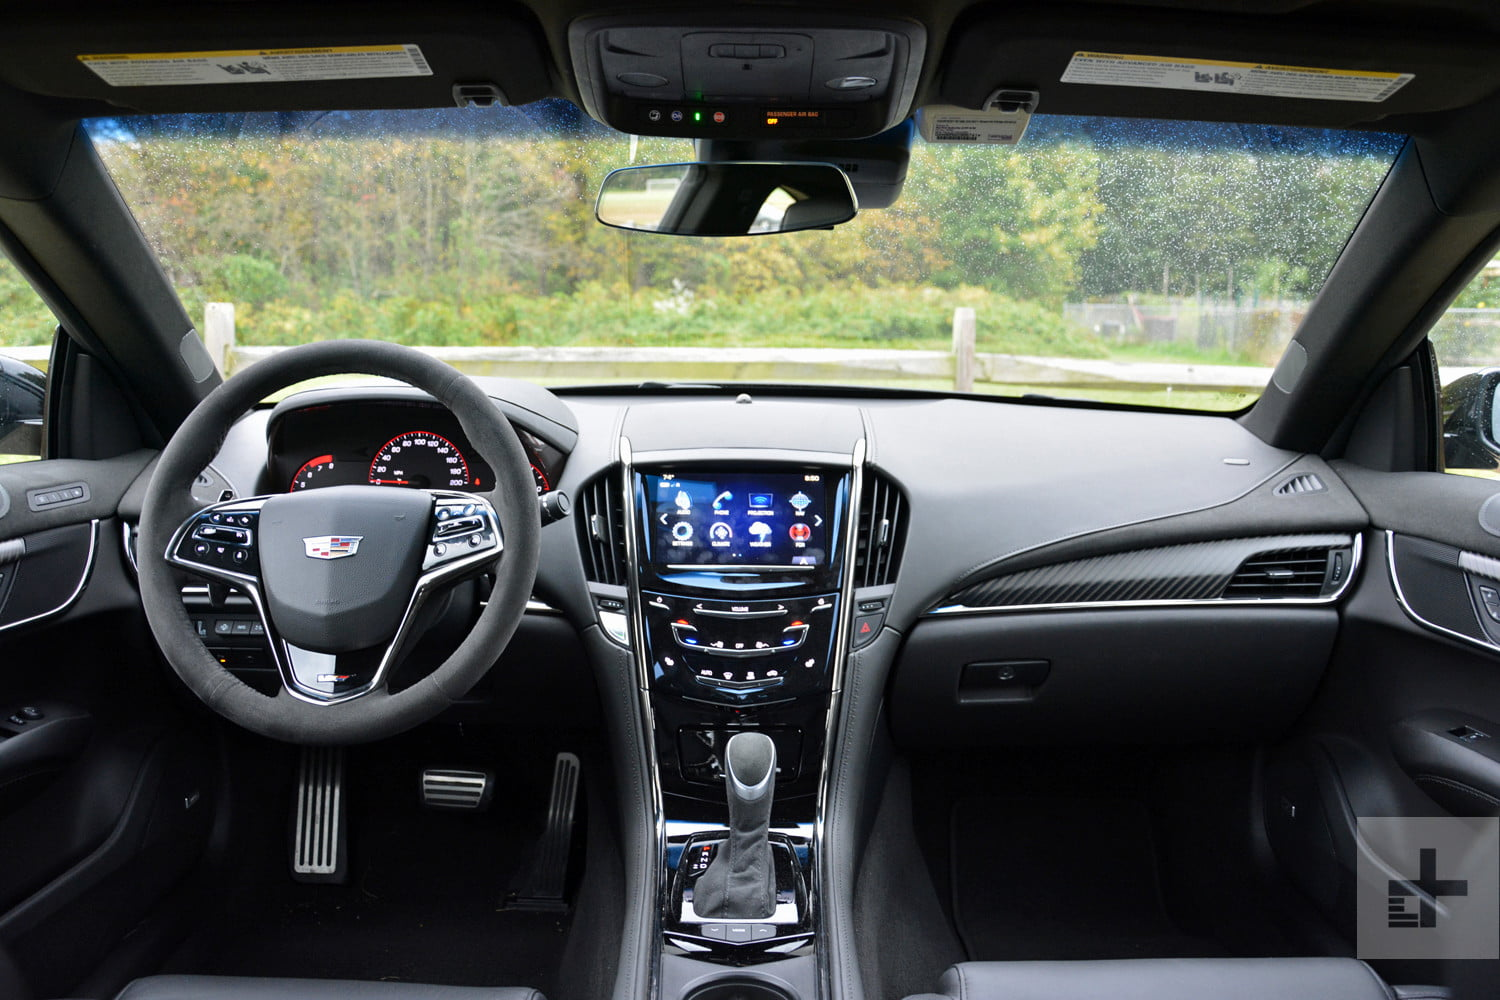 2017 cadillac ats v coupe review performance pictures and more digital trends. Black Bedroom Furniture Sets. Home Design Ideas